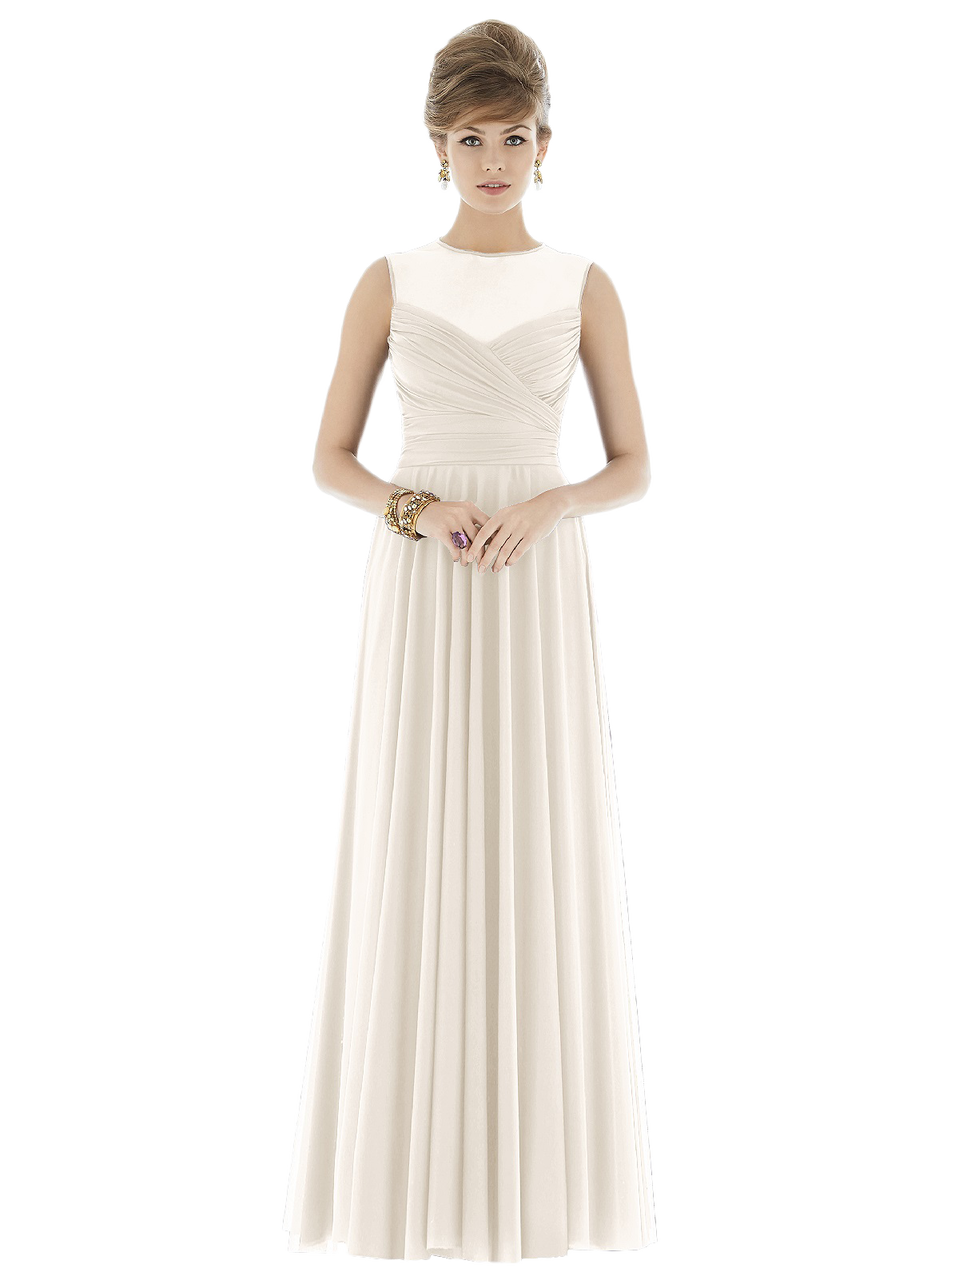 Bridals by lori alfred sung d677 15700 httpshop bridals by lori alfred sung d677 15700 httpshop alfred sungknit dressbridesmaid dressesbridesmaids ombrellifo Choice Image